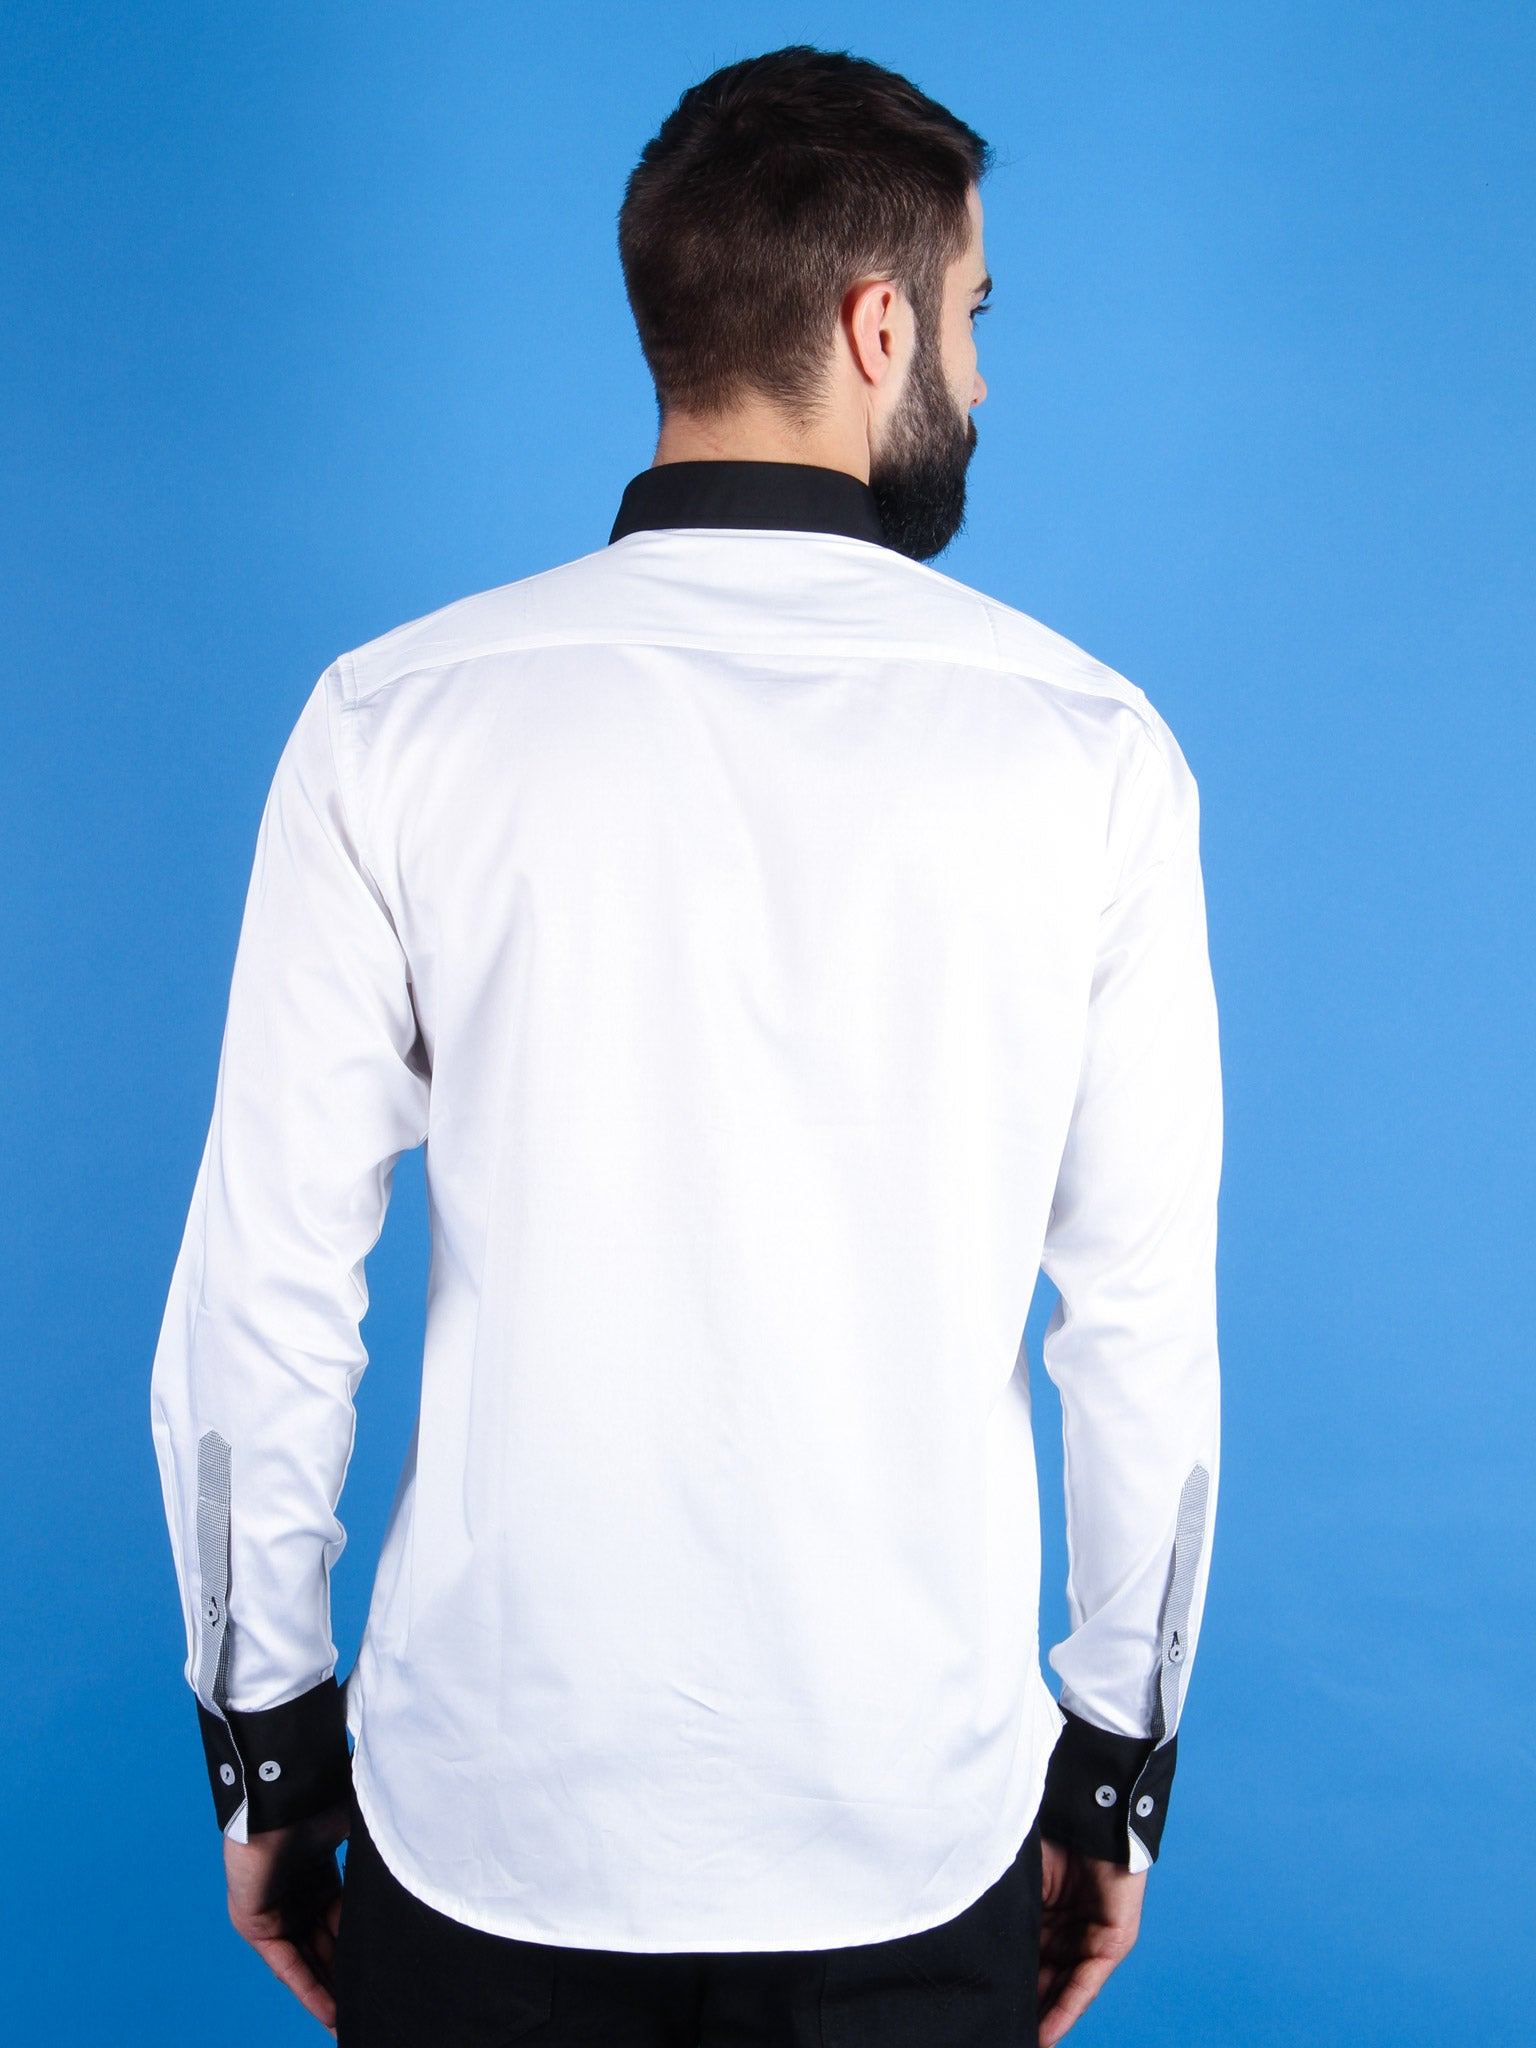 nouveau tux shirt model back image